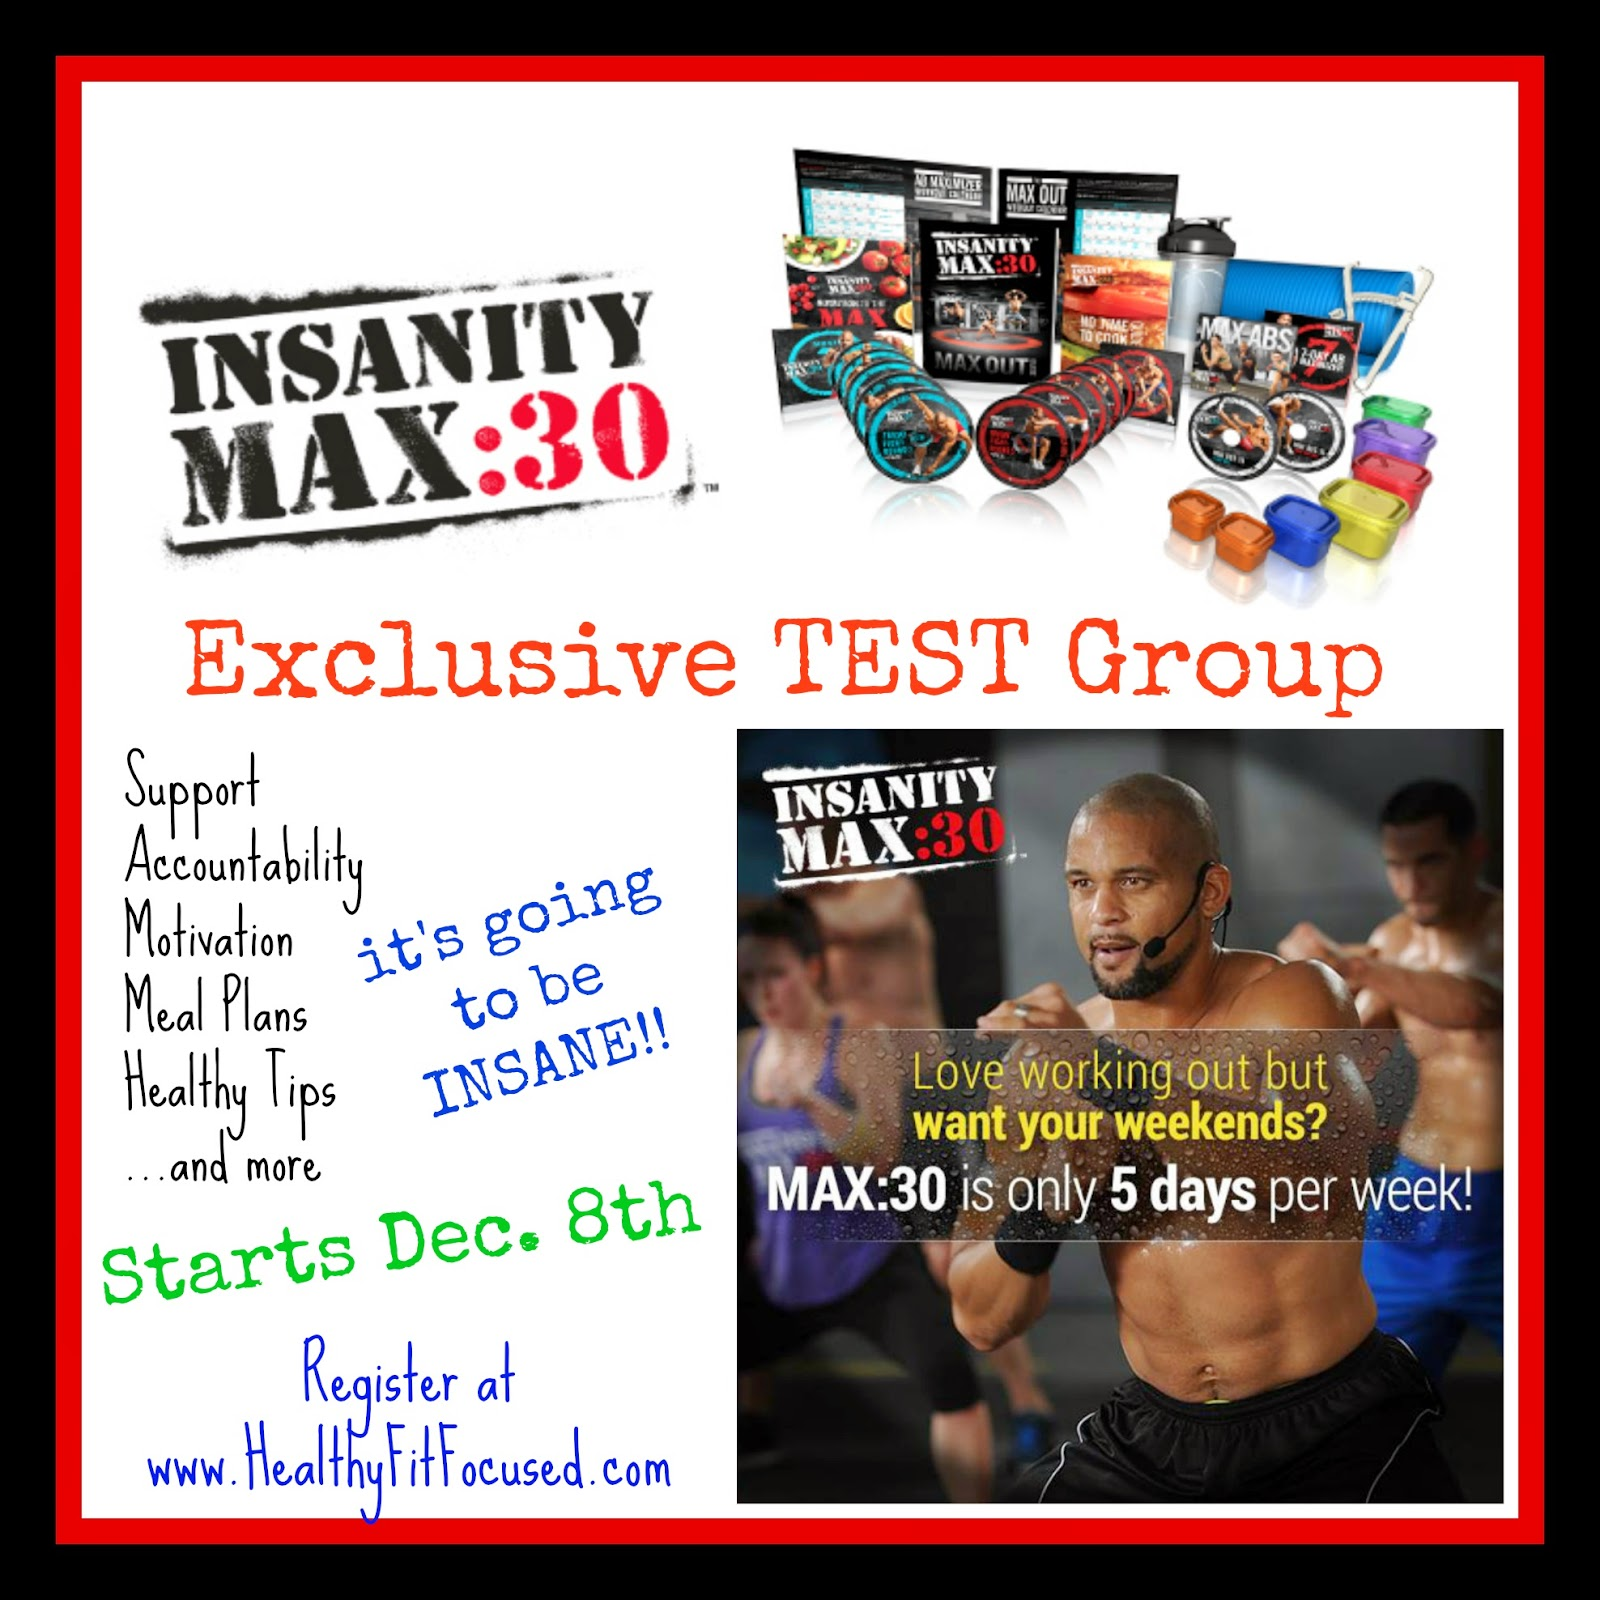 Insanity Max 30 Test Group, www.HealthyFitFocused.com